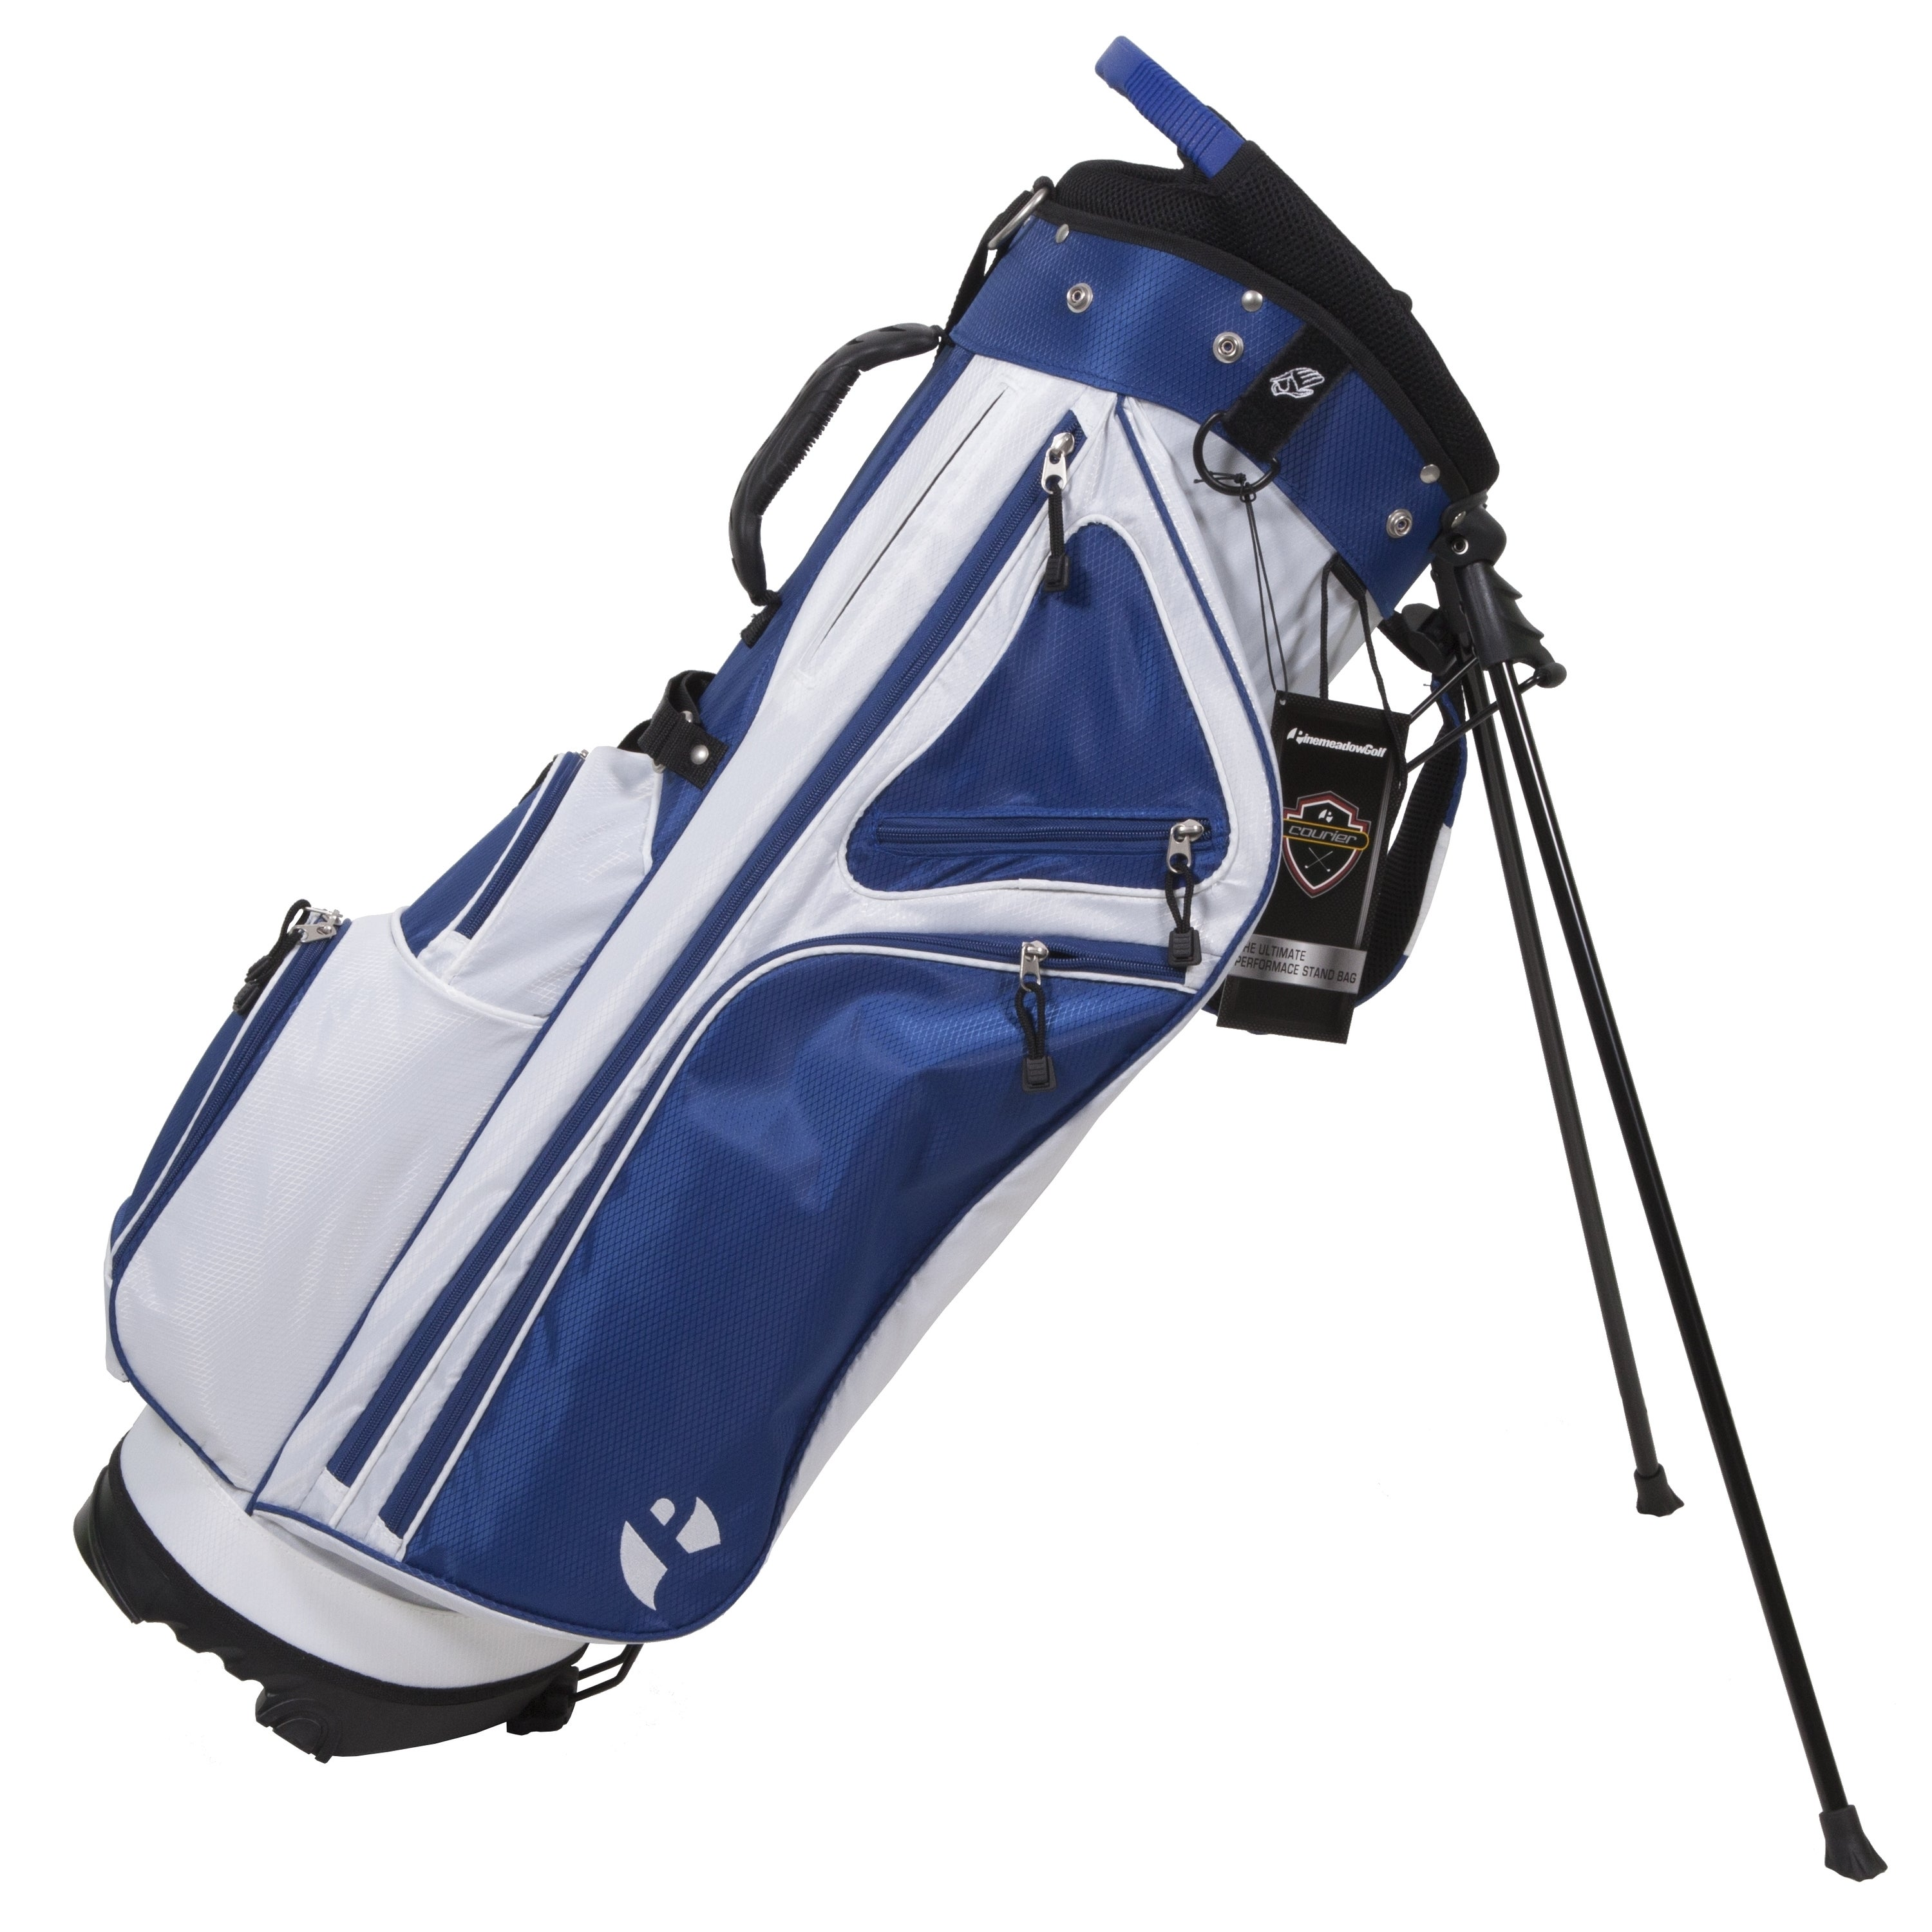 Pinemeadow Courier 3.0 Stand Bag (Blue/White)